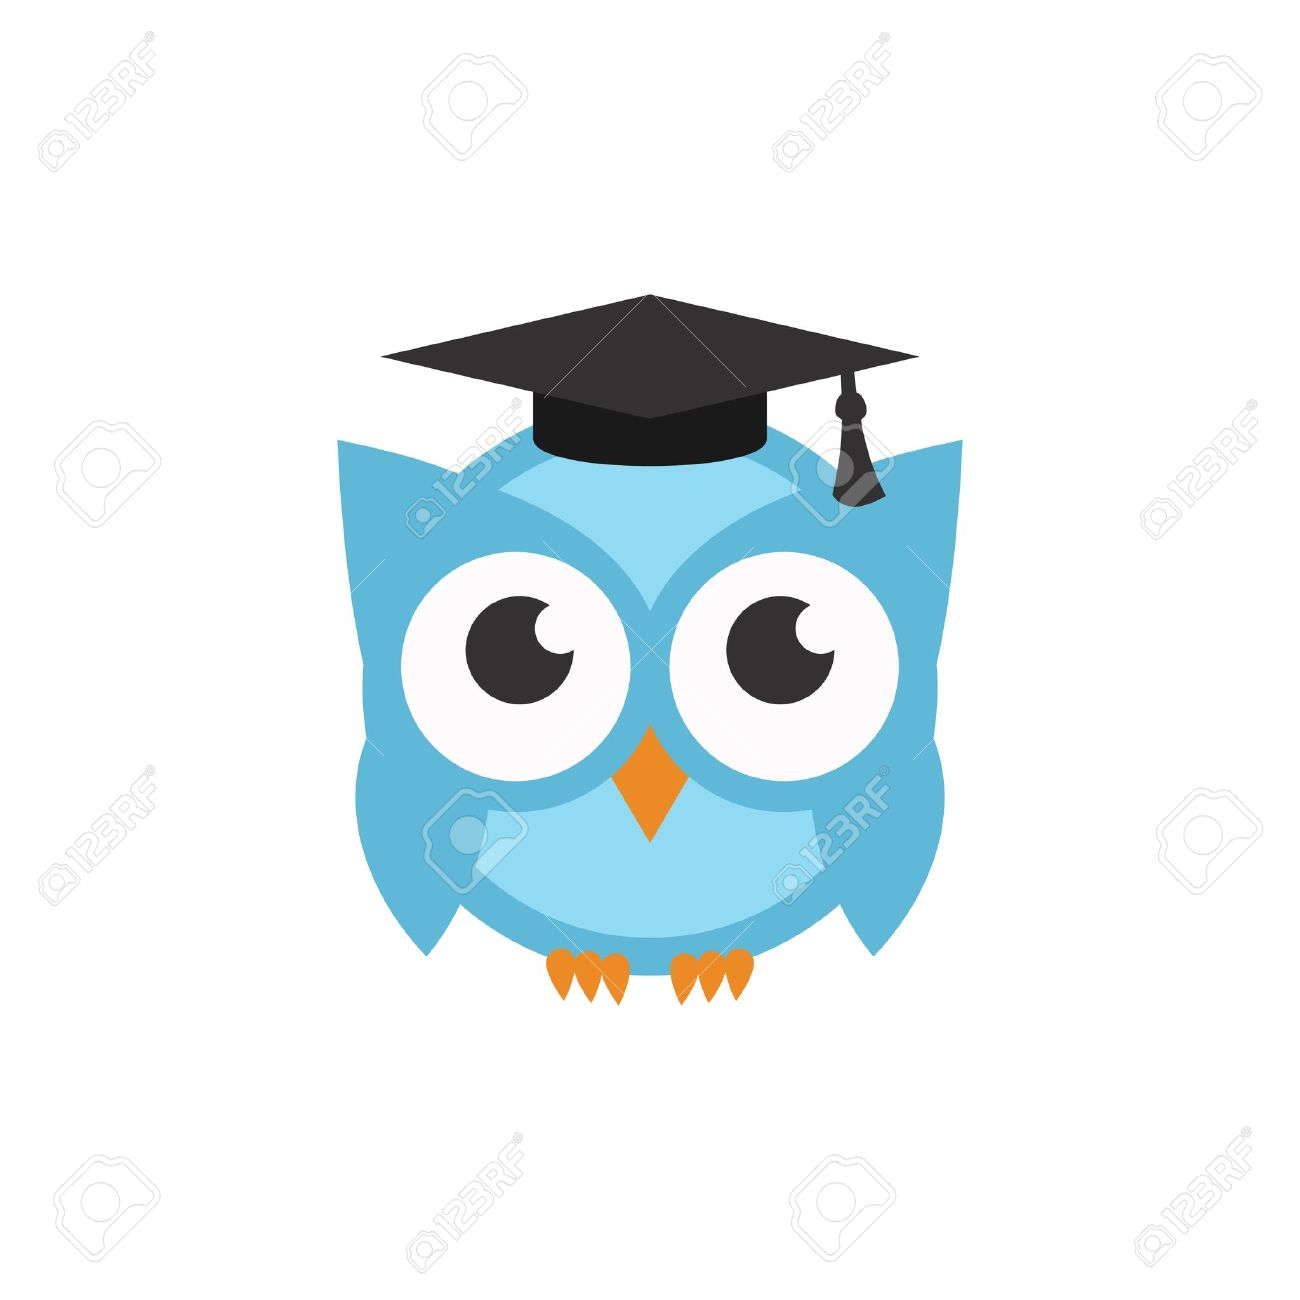 Owl Template Stock Photo, Picture And Royalty Free Image. Image ...